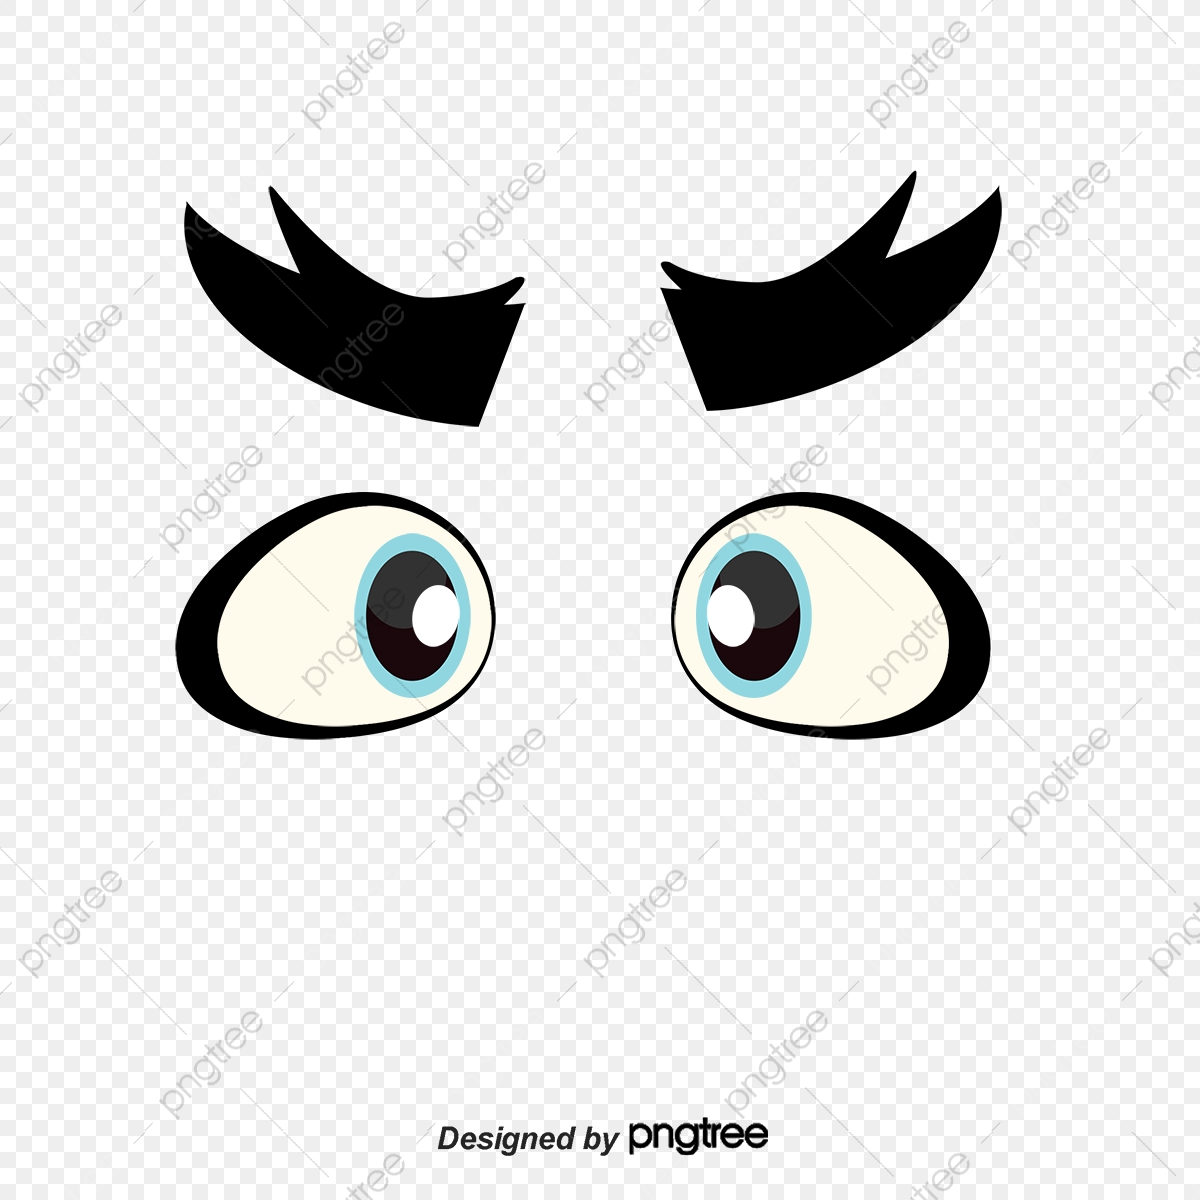 Vector Cartoon Eyes Big Eyes Look Cartoon Vector Vector Cartoon Png Transparent Clipart Image And Psd File For Free Download